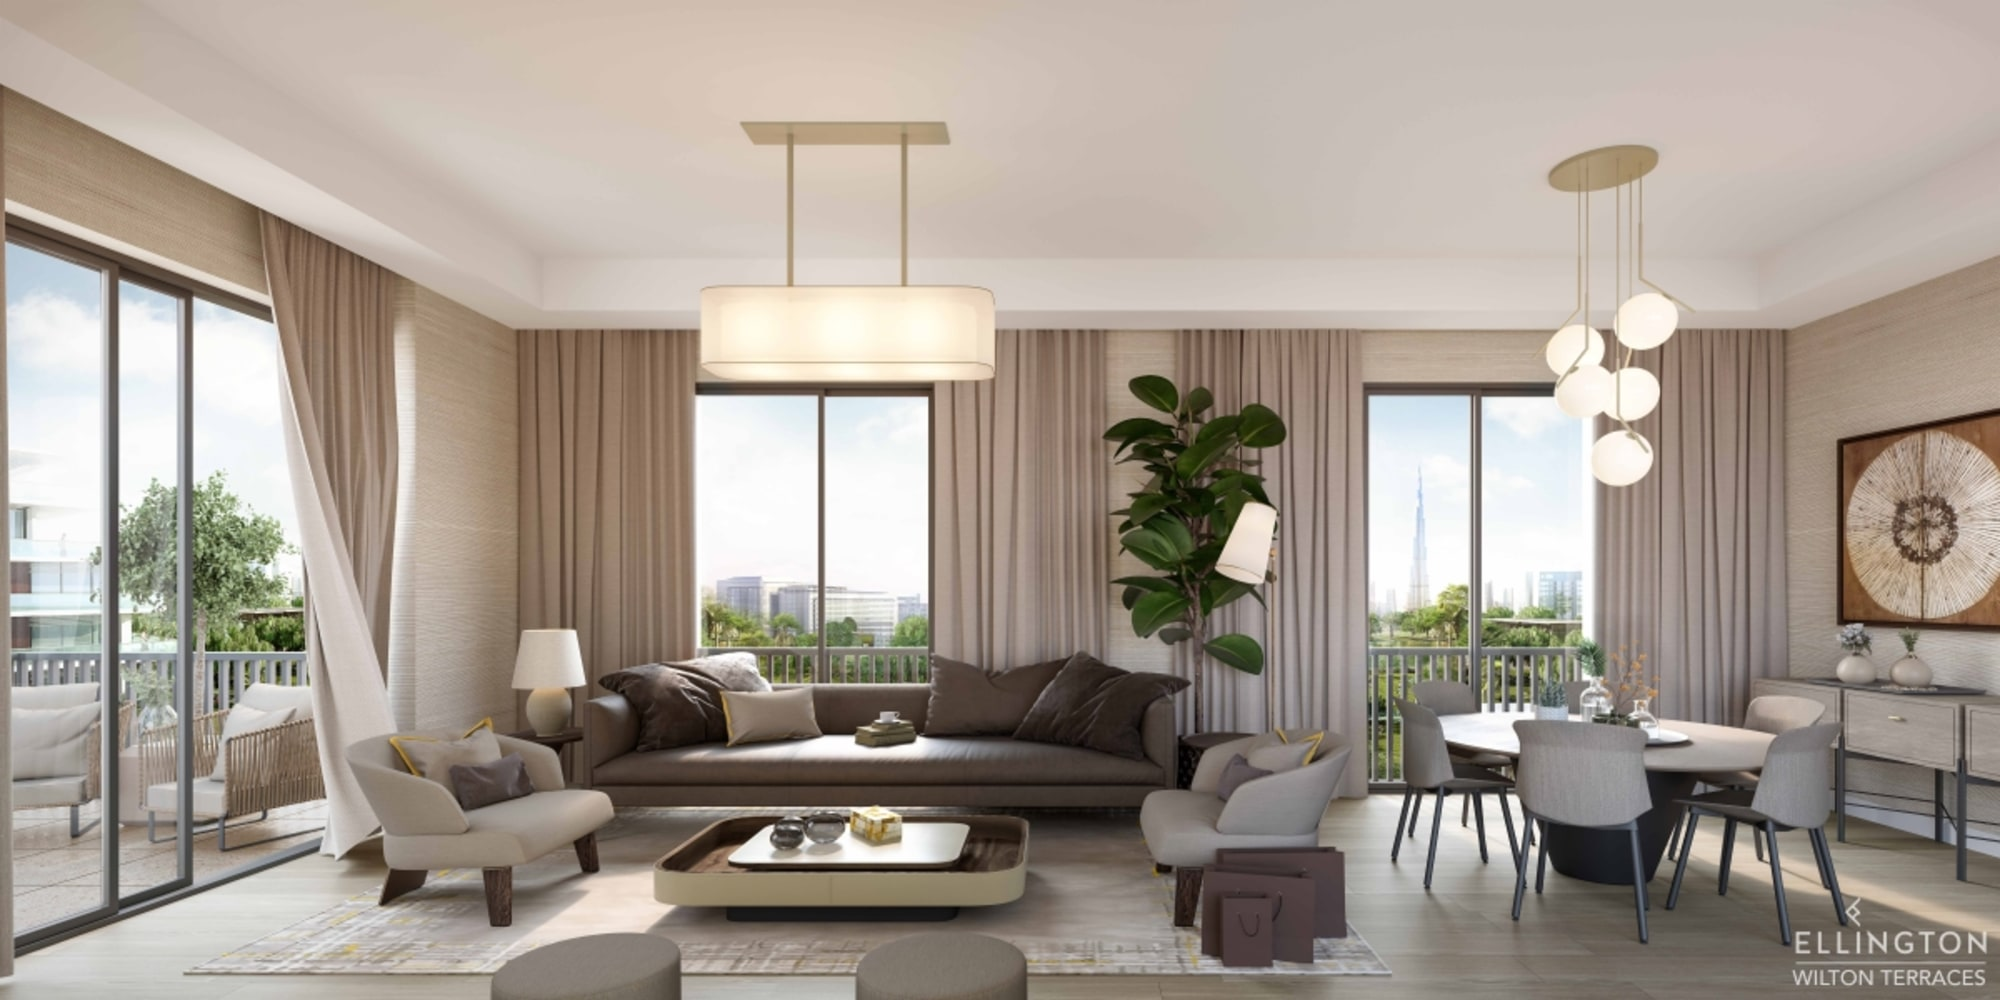 Contemporary | Park View | Completion by Dec 19